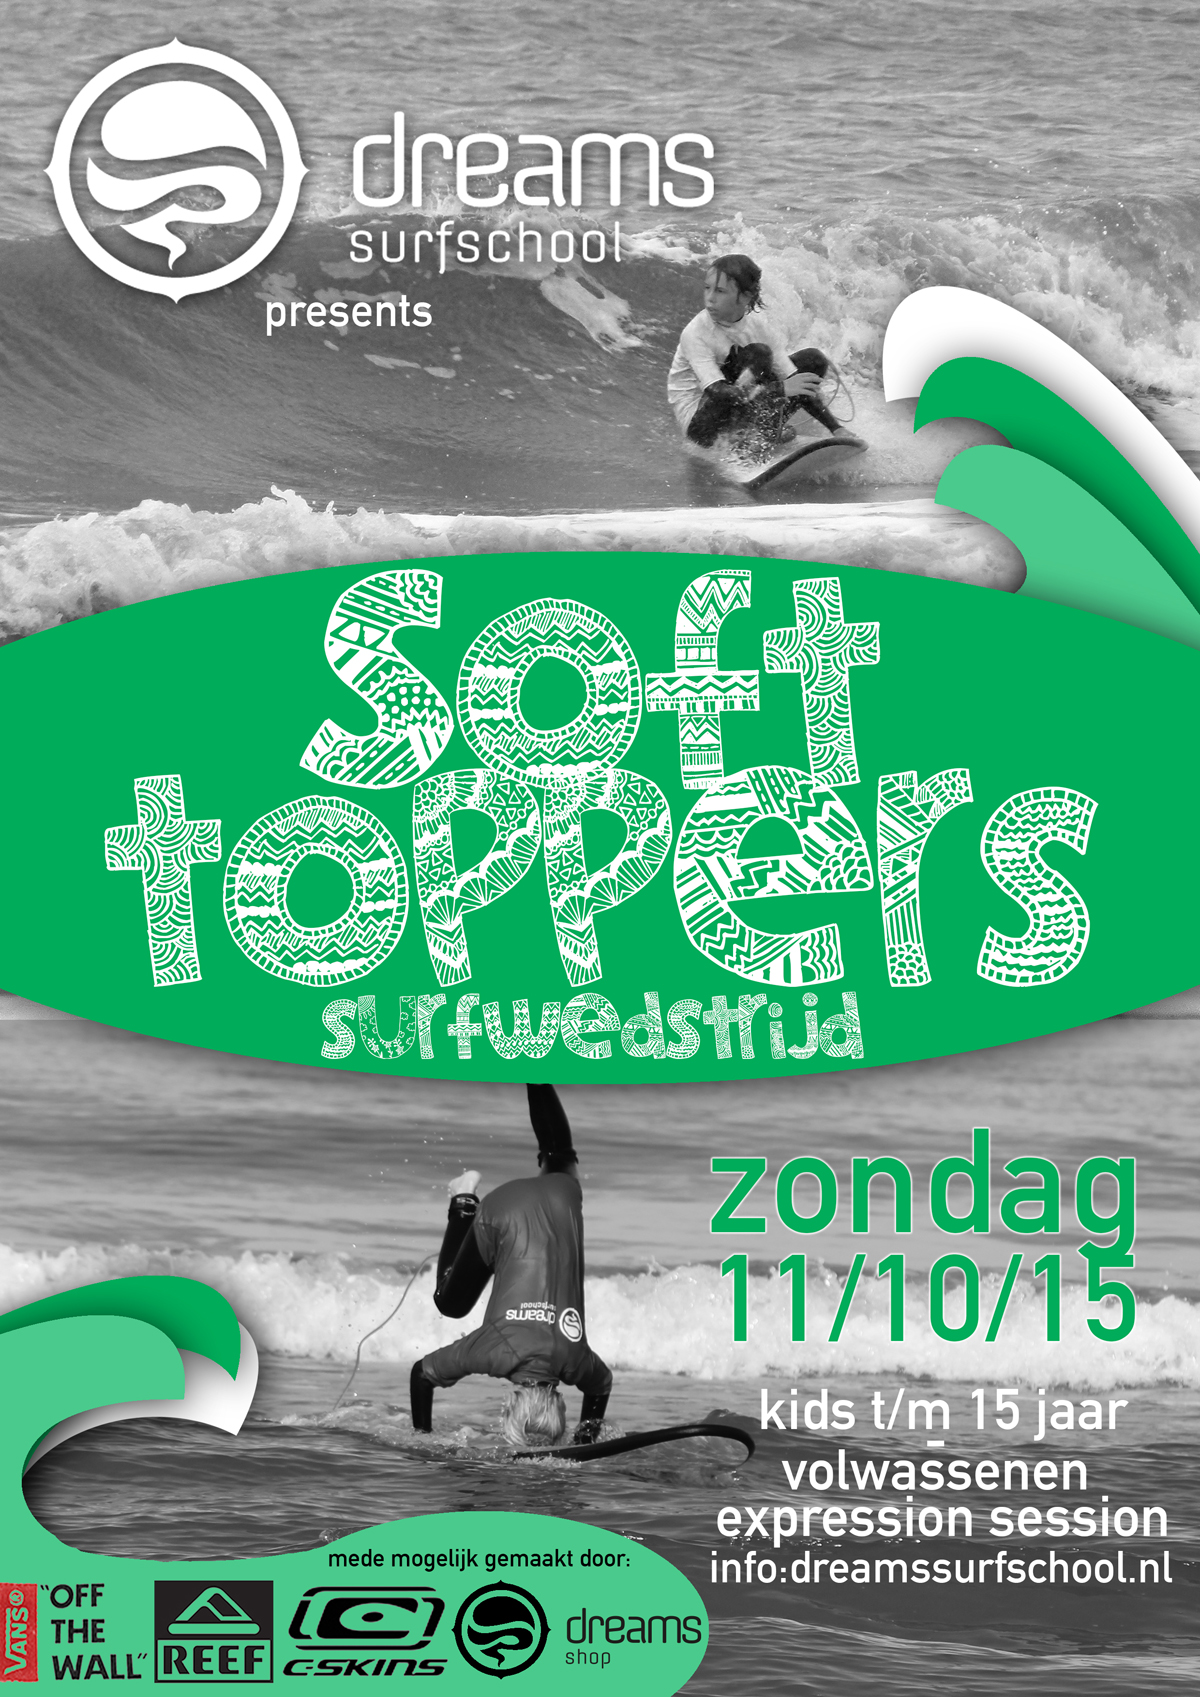 Dreams Softtoppers Surfwedstrijd 2015